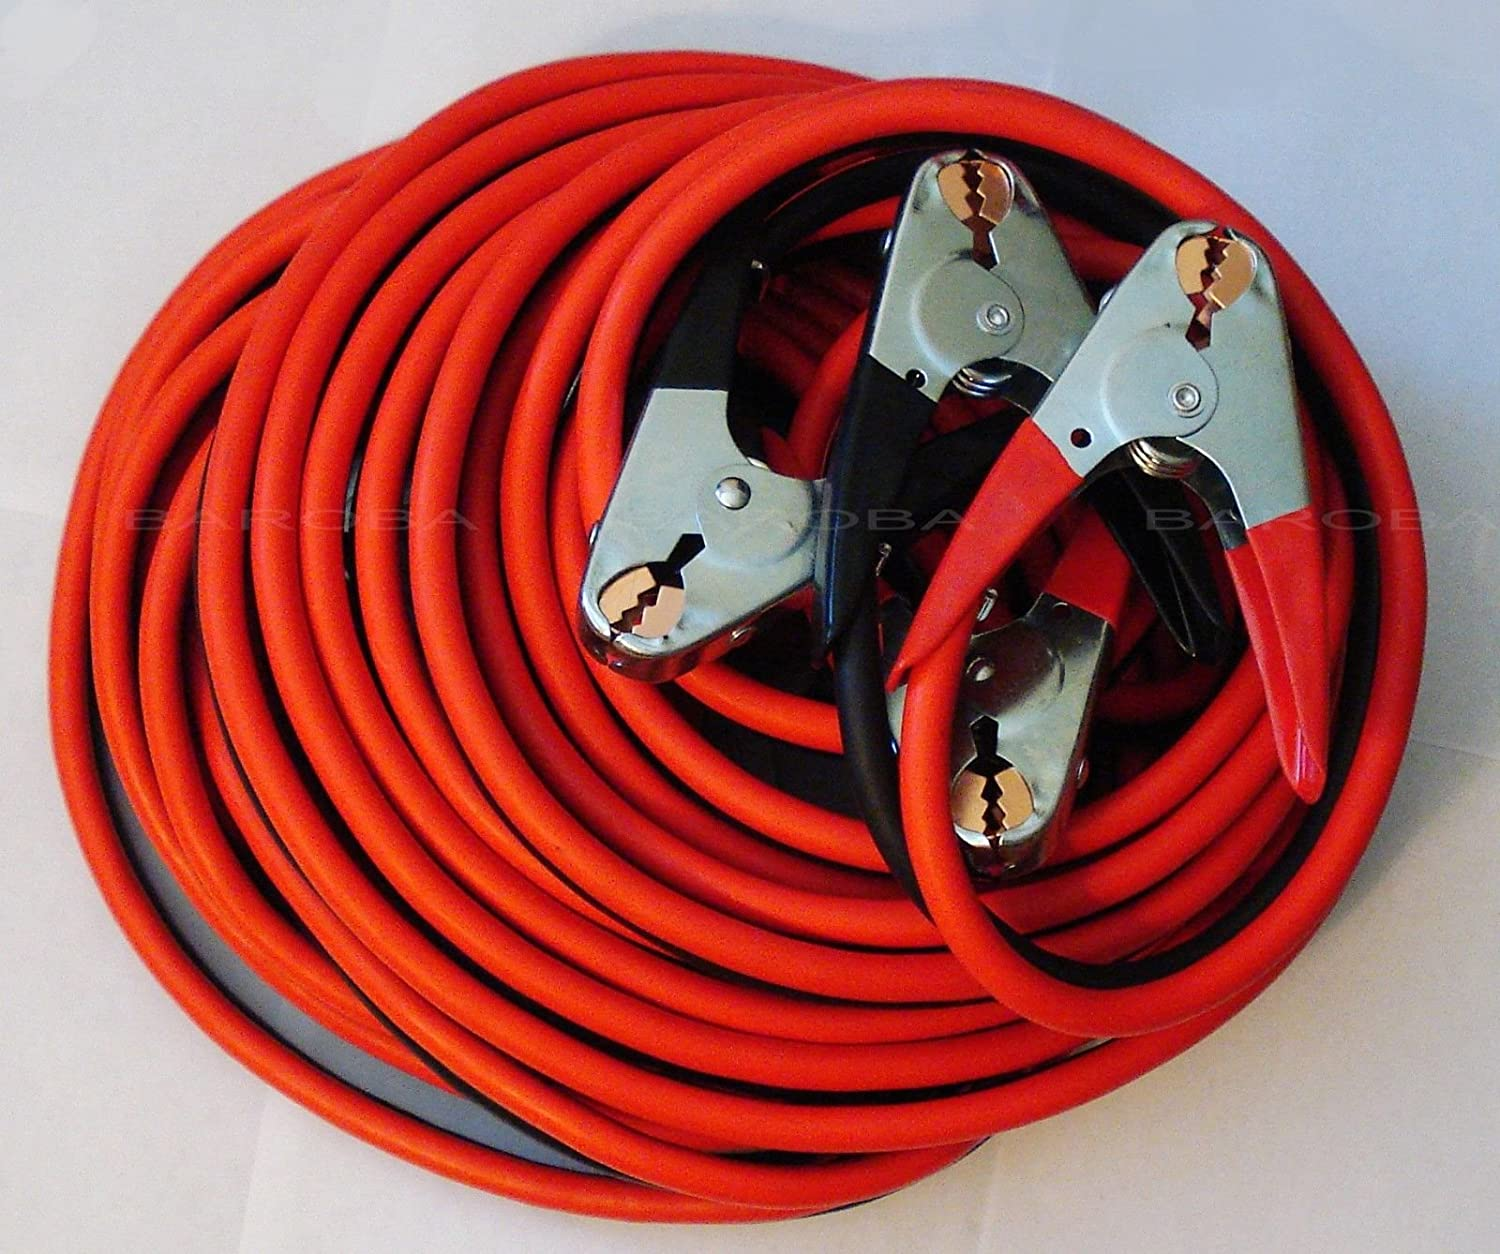 PAKA Tools Industrial Heavy Duty 30 feet 1 Gauge Booster Jumper Cable